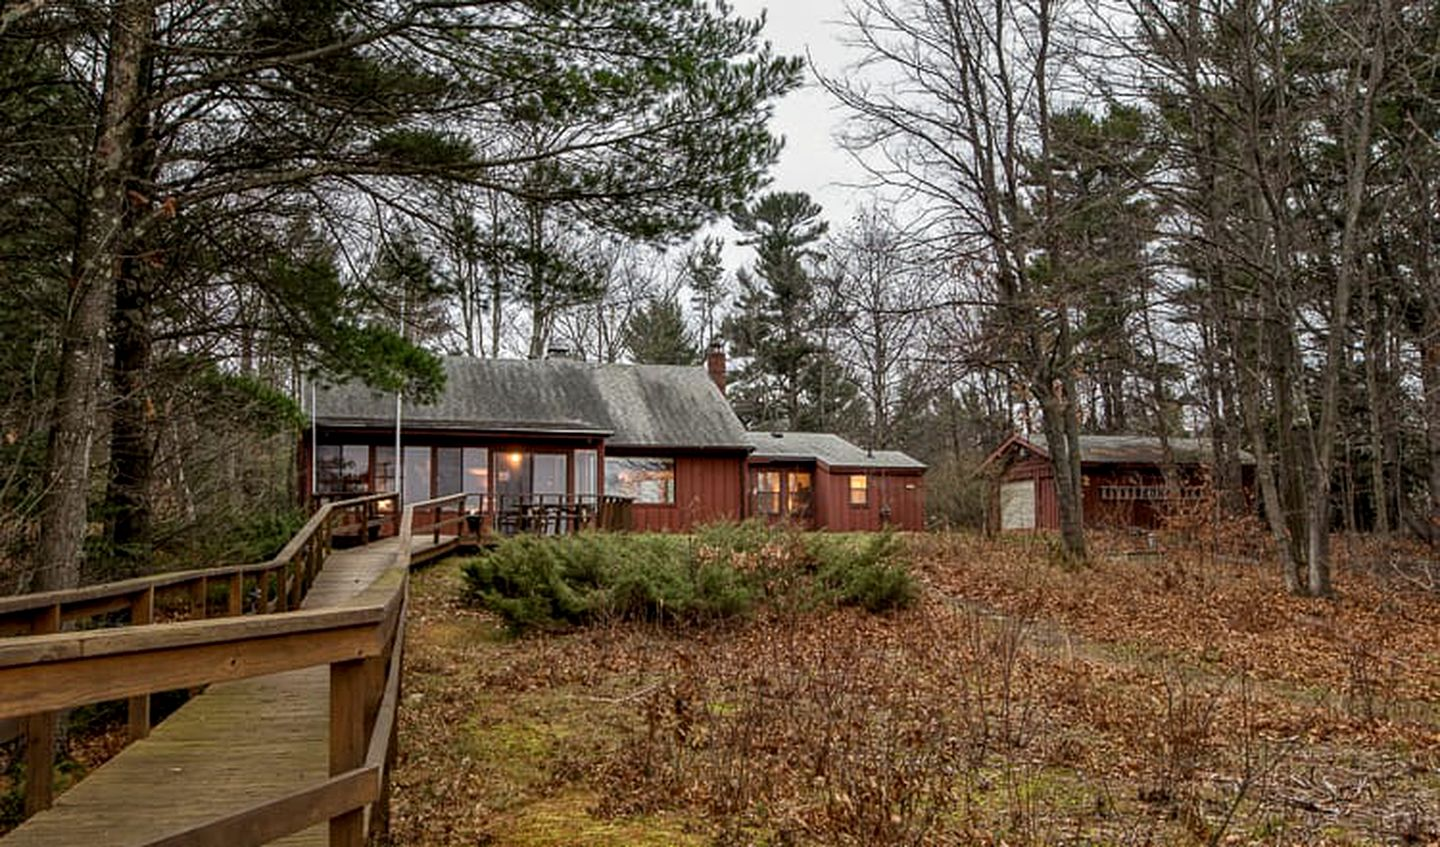 Cabins (Beaver Island, Michigan, United States)